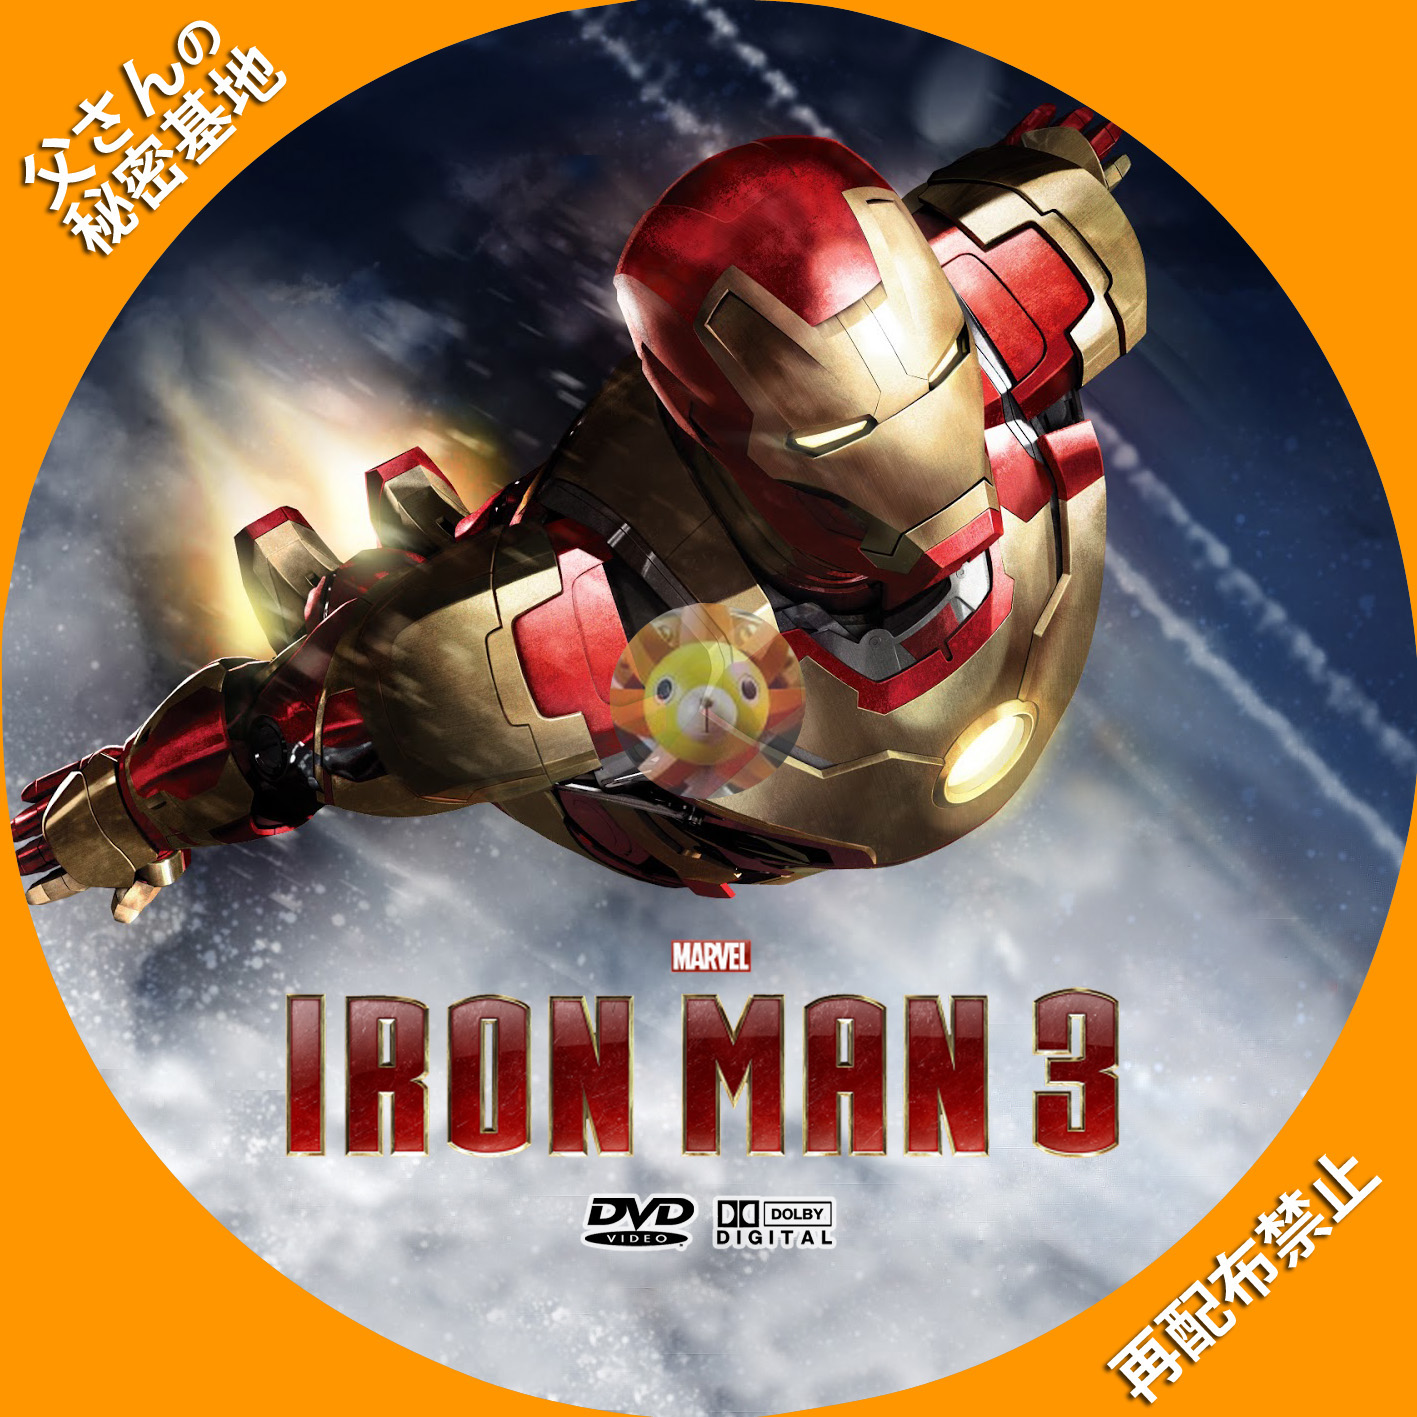 IRON MAN 3 A_DVD